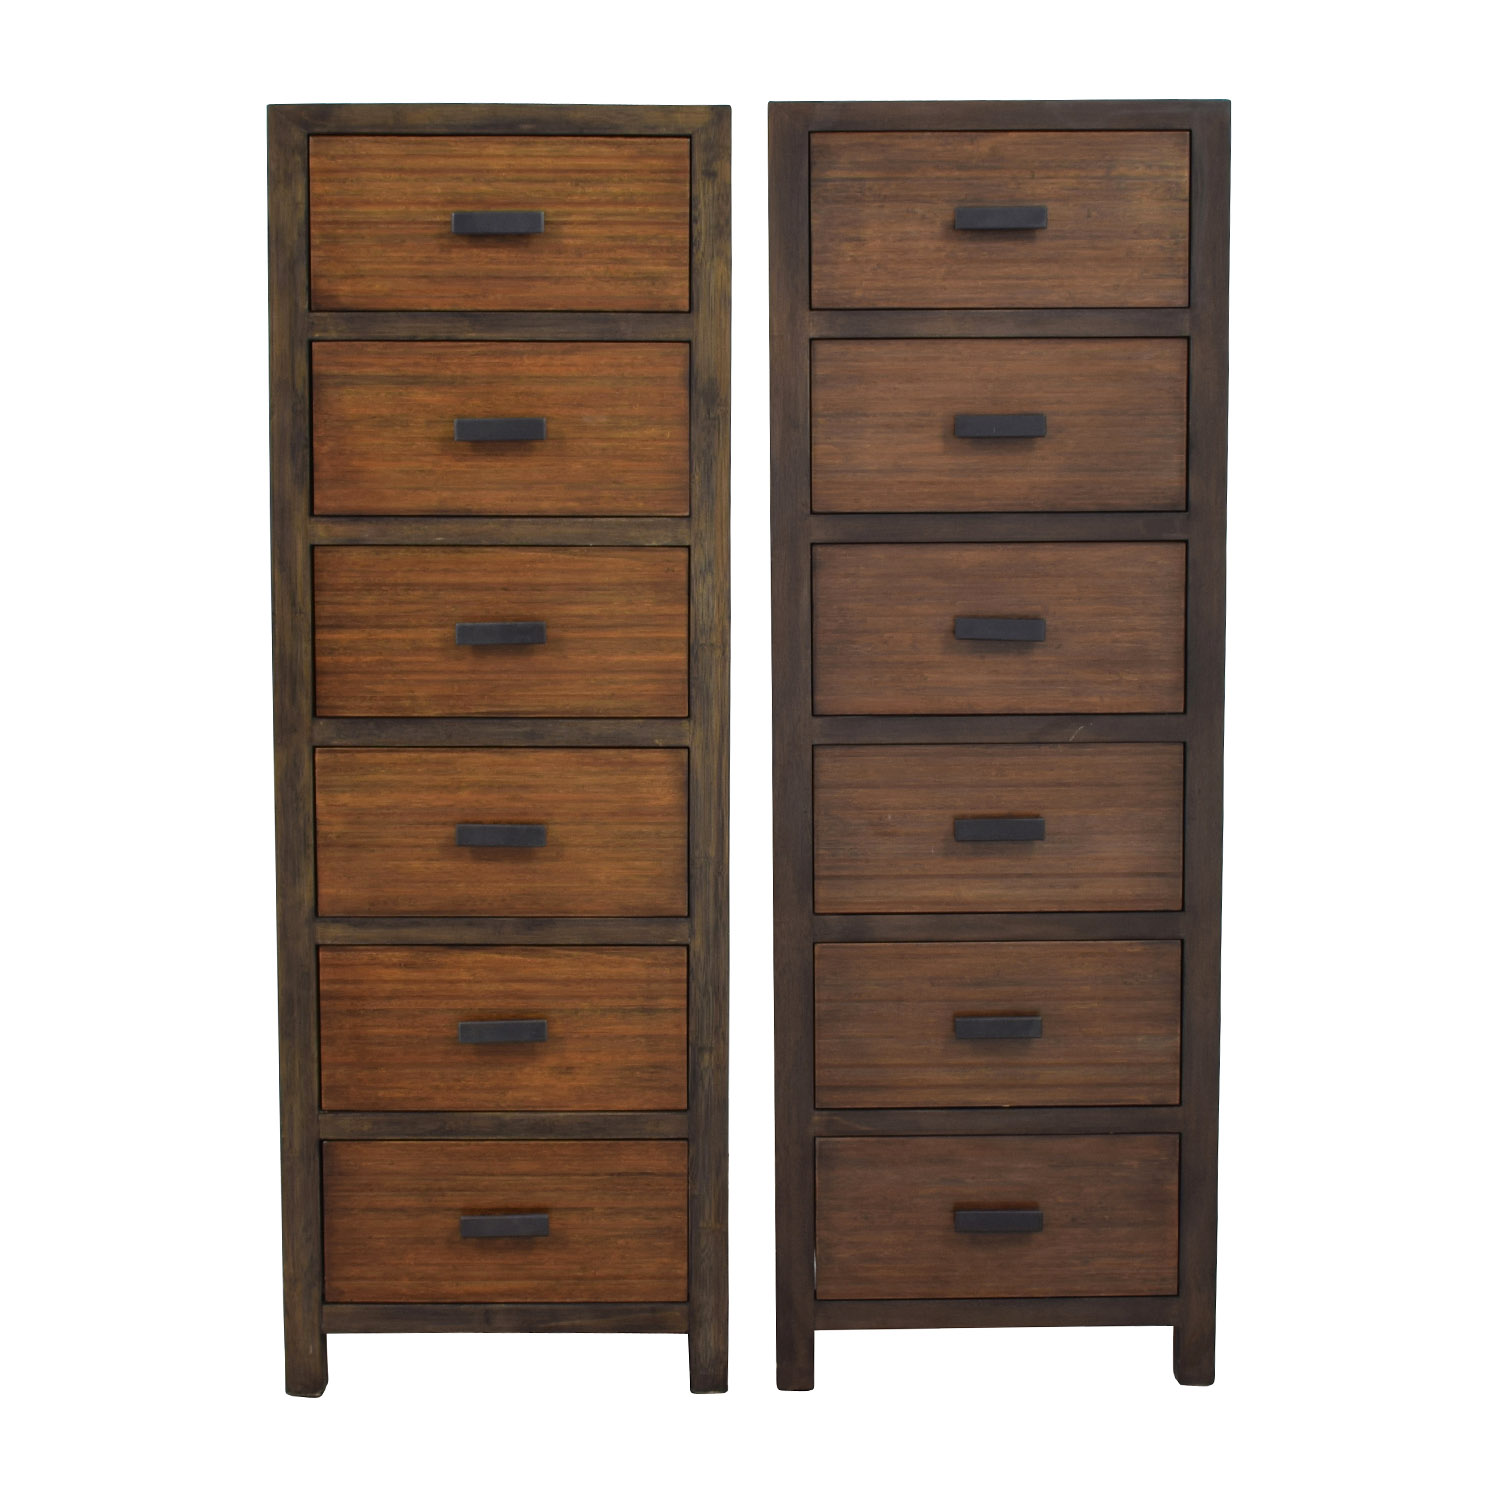 Crate and Barrel Crate & Barrel Del Re Slim Six Drawer Dresser nj